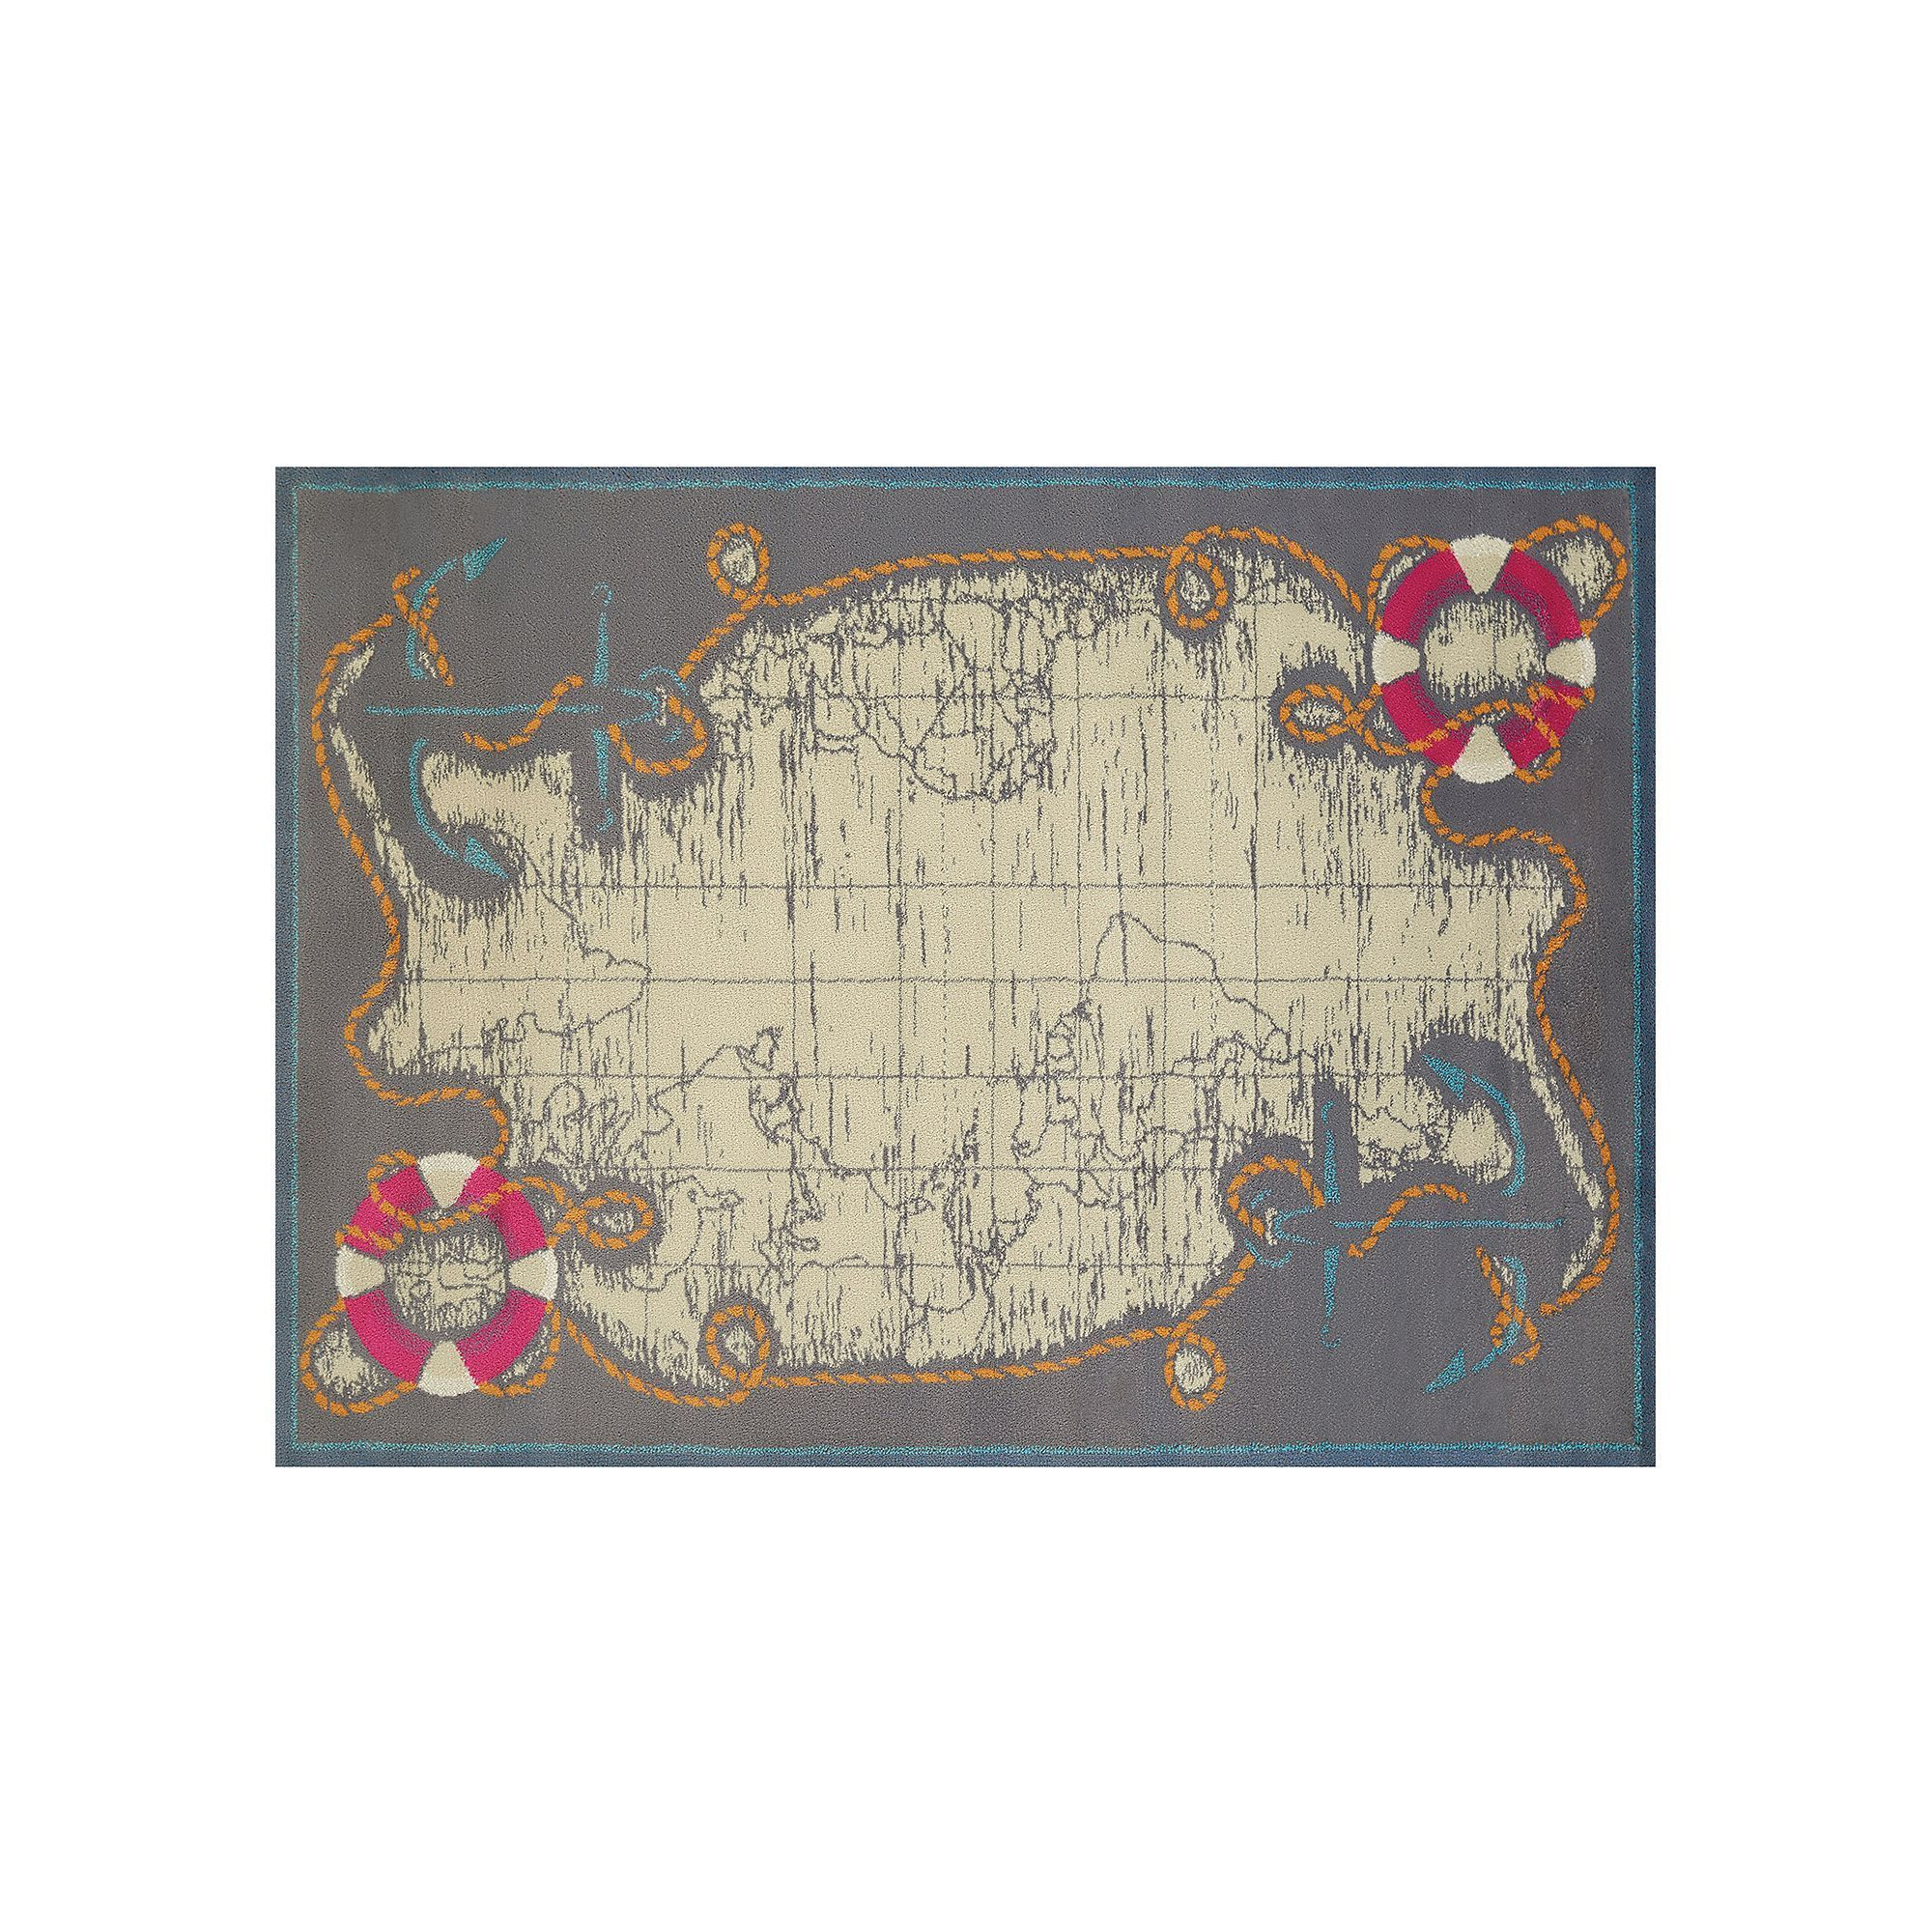 United weavers regional concepts mariner map rug grey map rug united weavers regional concepts mariner map rug grey gumiabroncs Choice Image